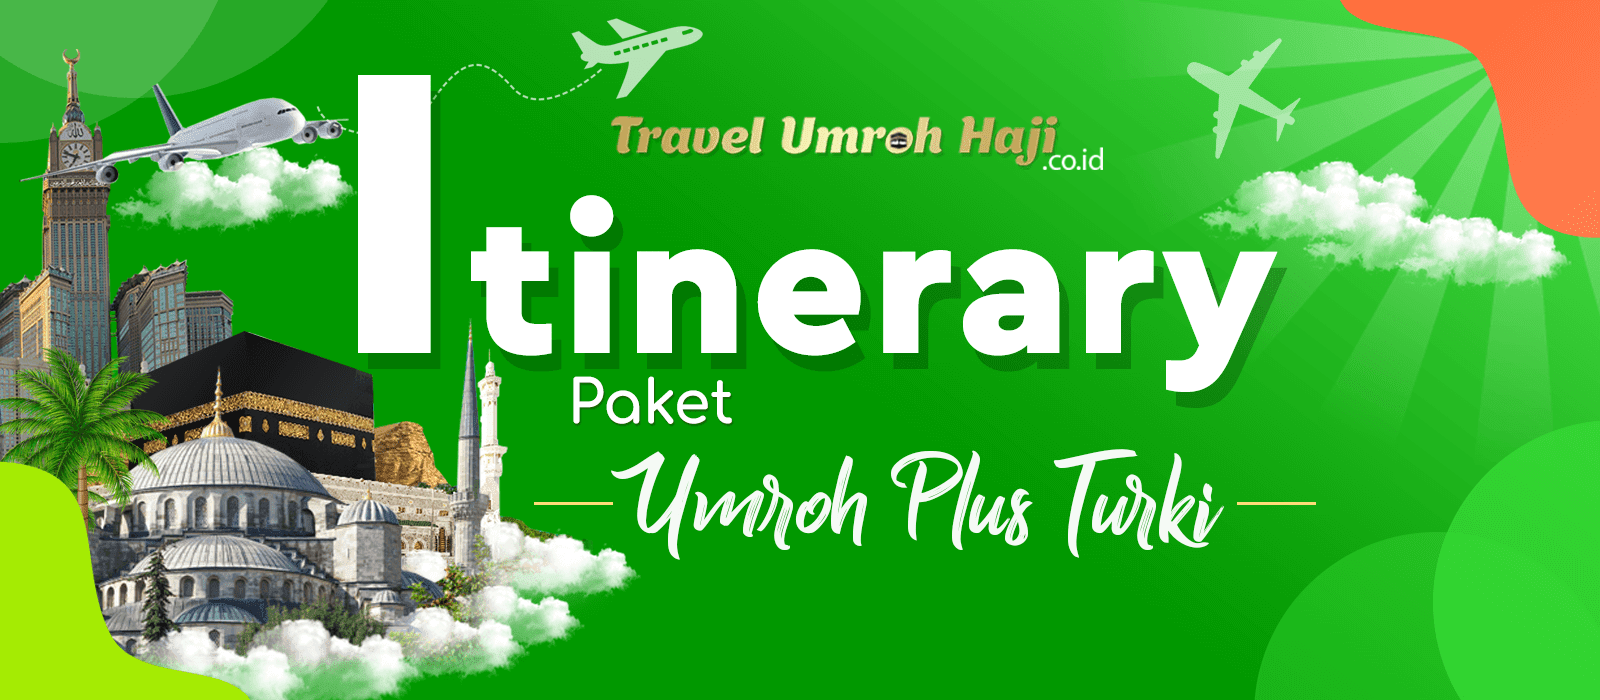 Program Itinerary Umroh Plus Turki 12 Hari Musim Panas